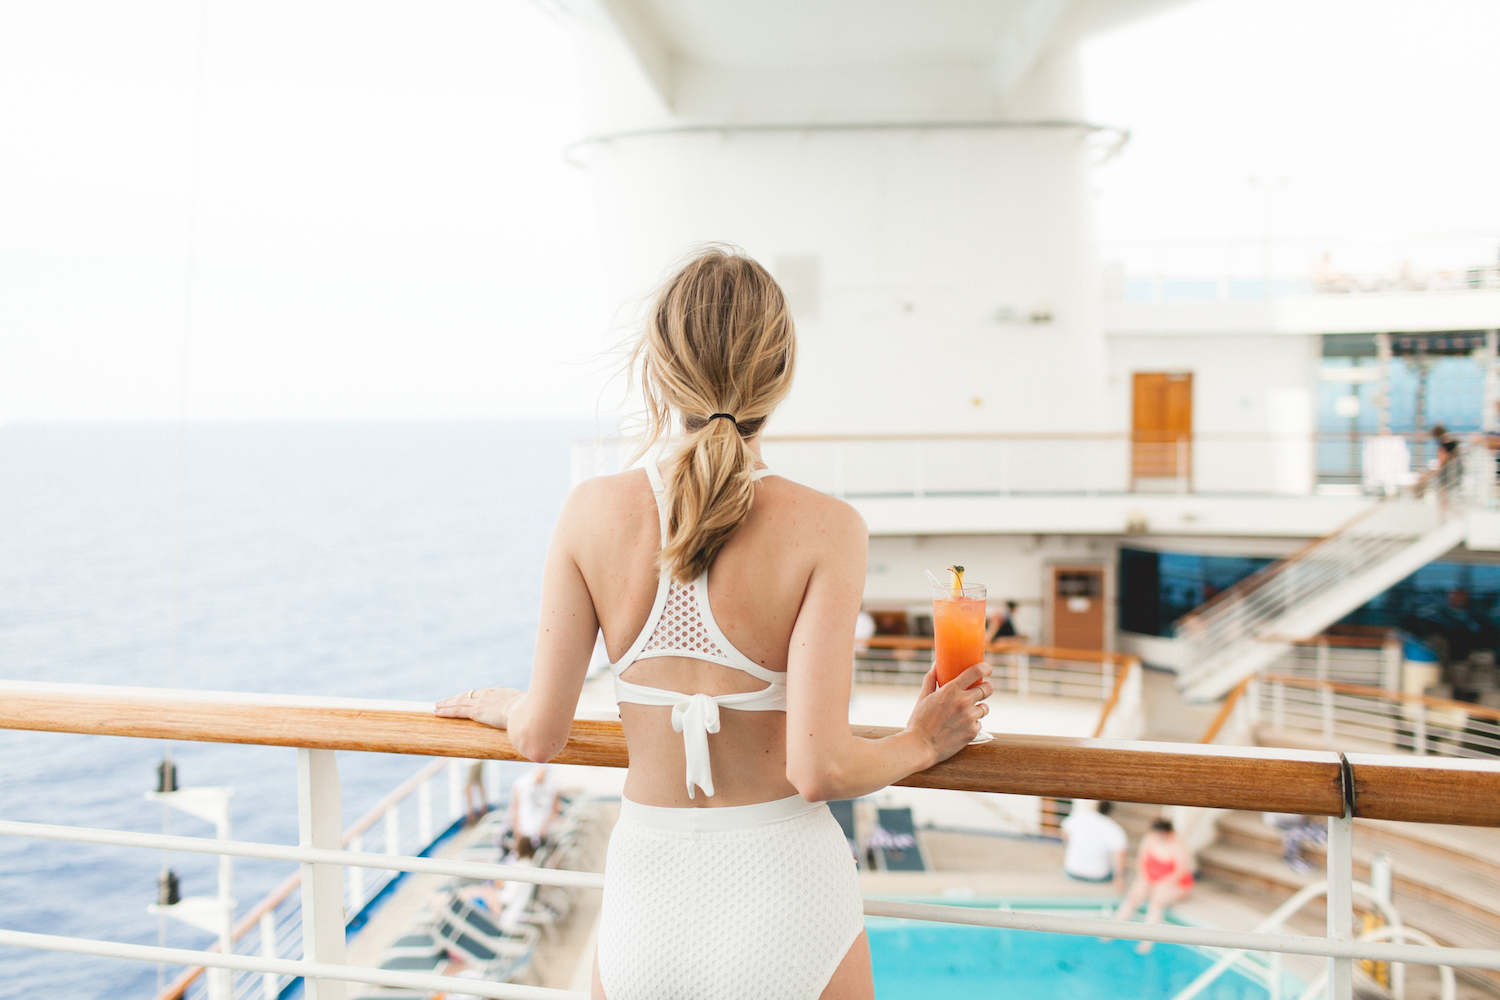 travel, come back new, lido deck, oceannow, terrace pool, fitness center, the love boat, OceanMedallion, Princess Cruises, MedallionClass, Caribbean cruise, 7 Day Western Caribbean Cruise